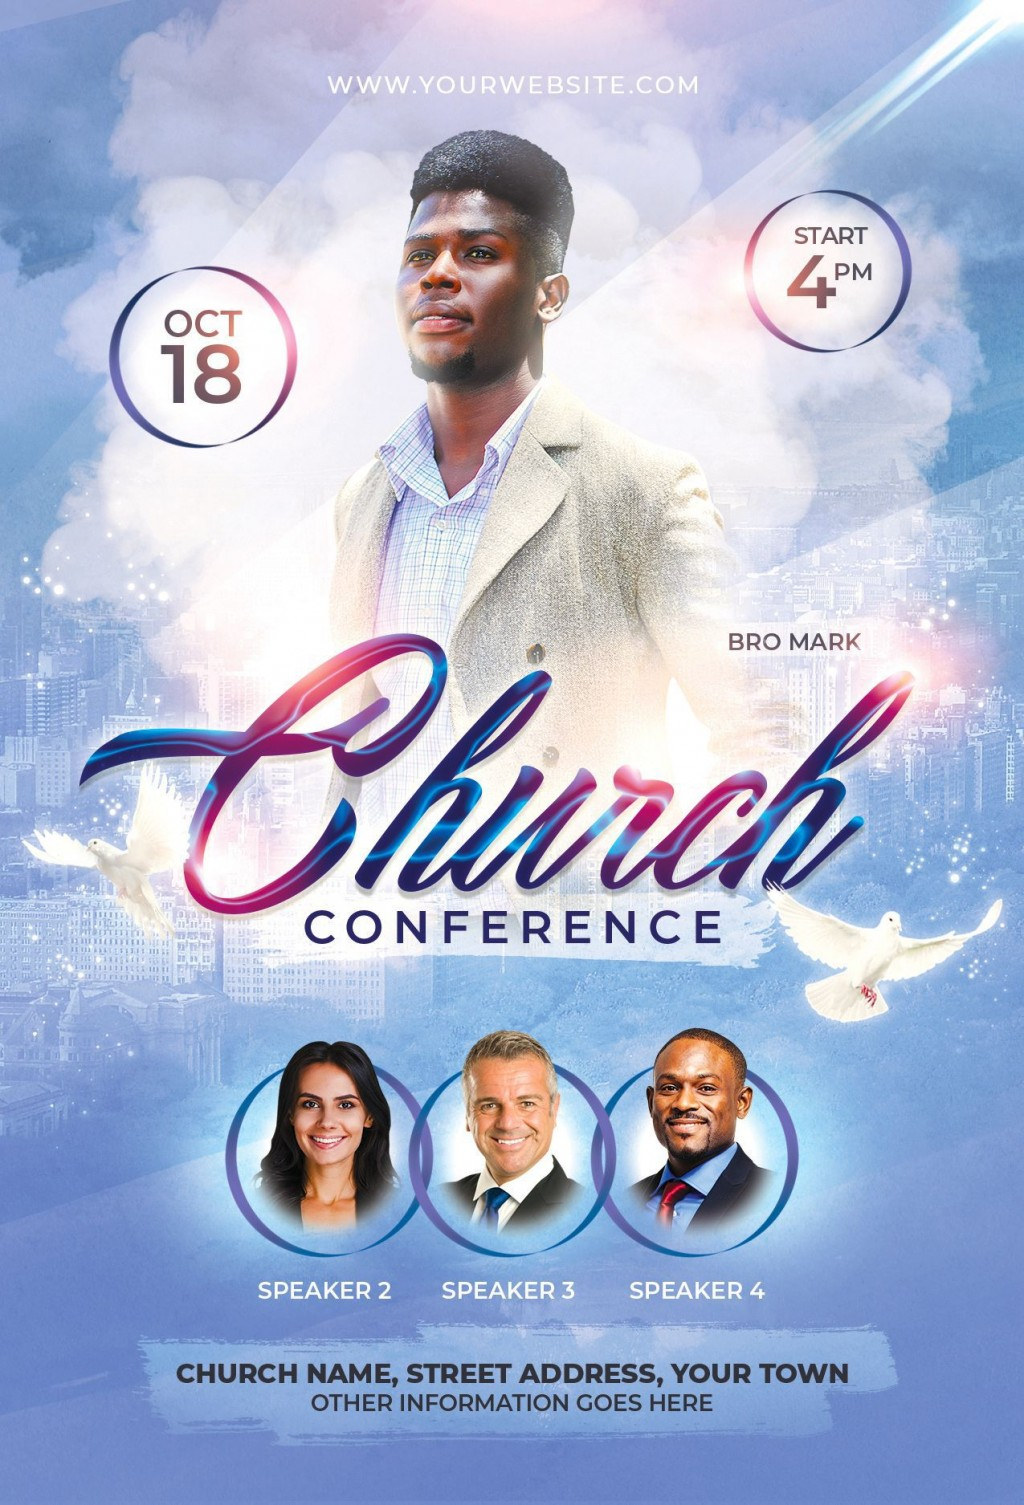 000 Unforgettable Church Flyer Template Free Download Concept  Event PsdLarge